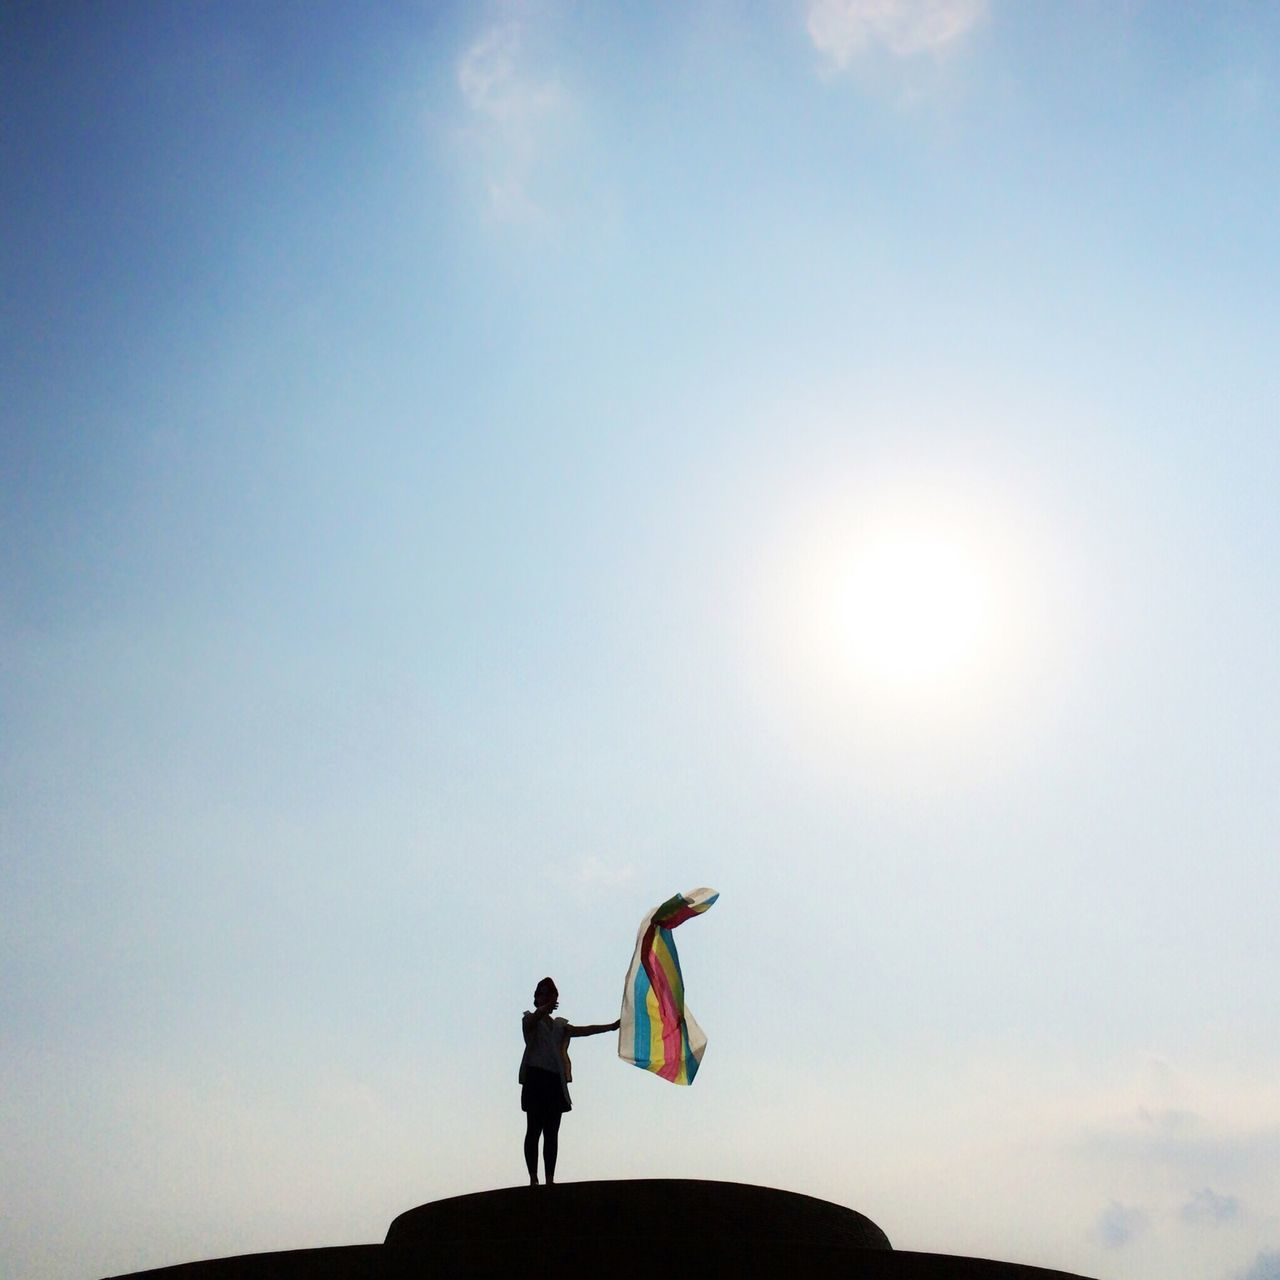 Low angle view of silhouette woman with colorful cloth against sky